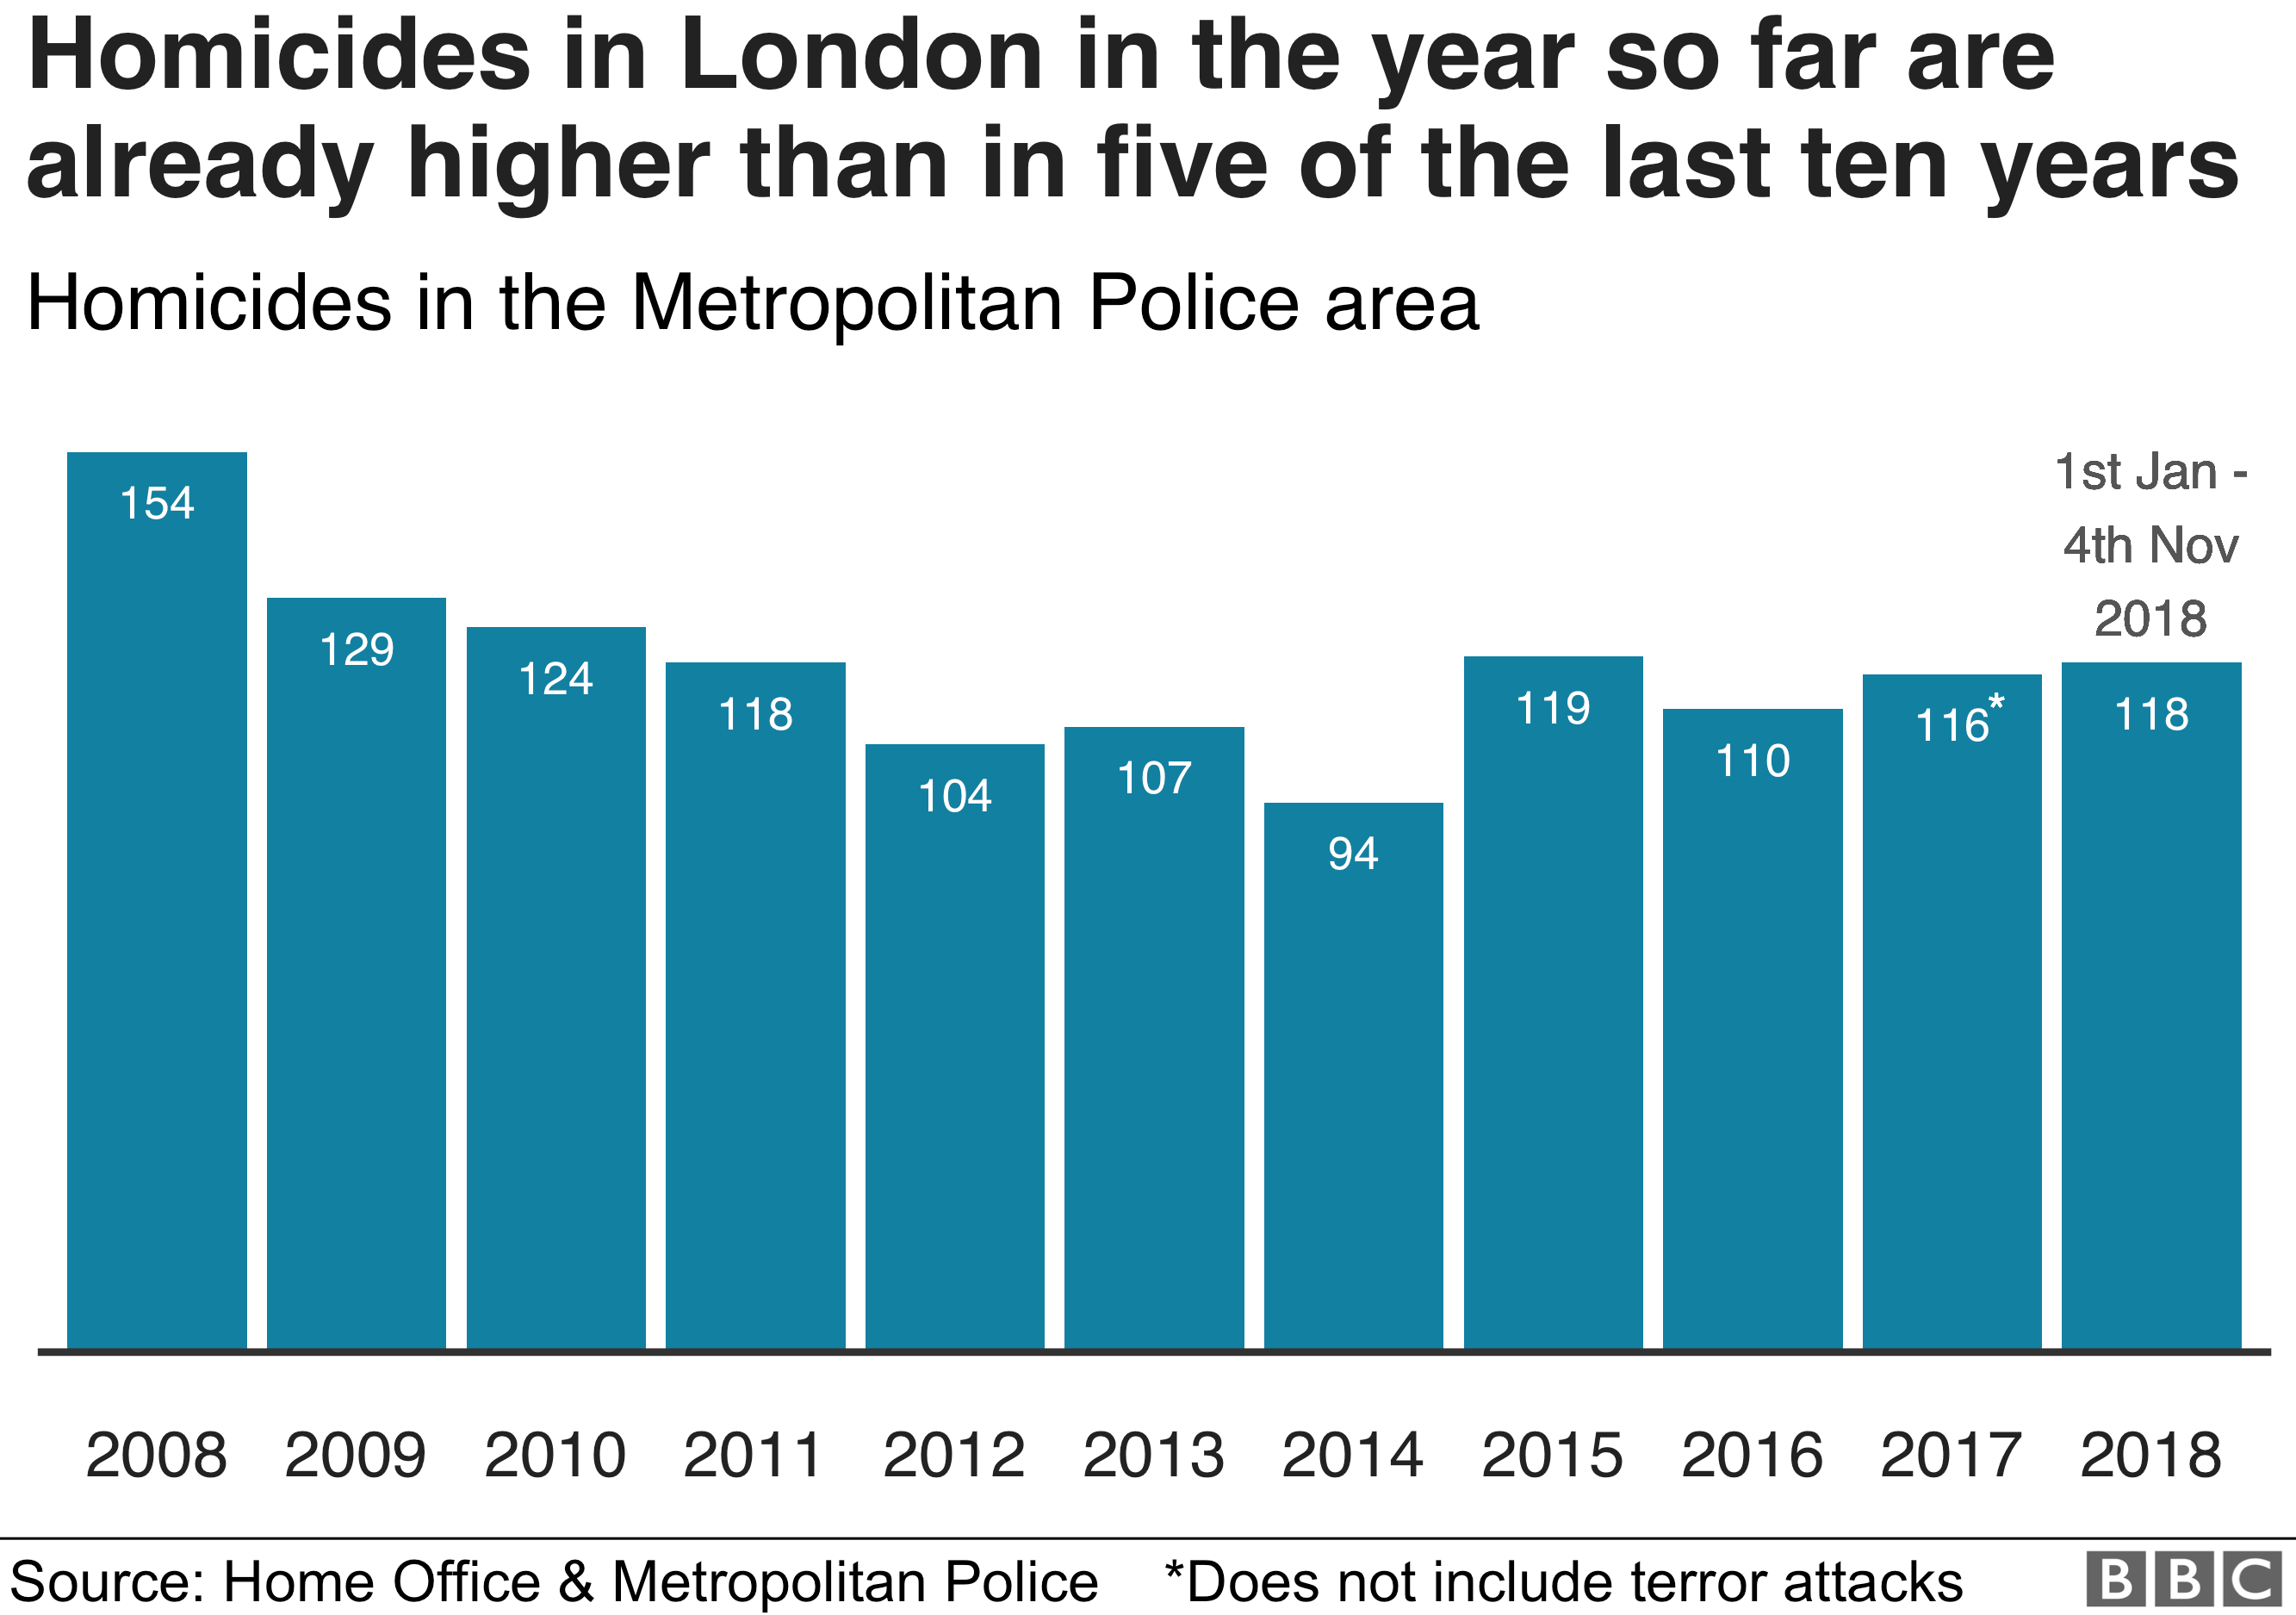 Homicides in London in the year so far are already higher than in five of the last ten years.